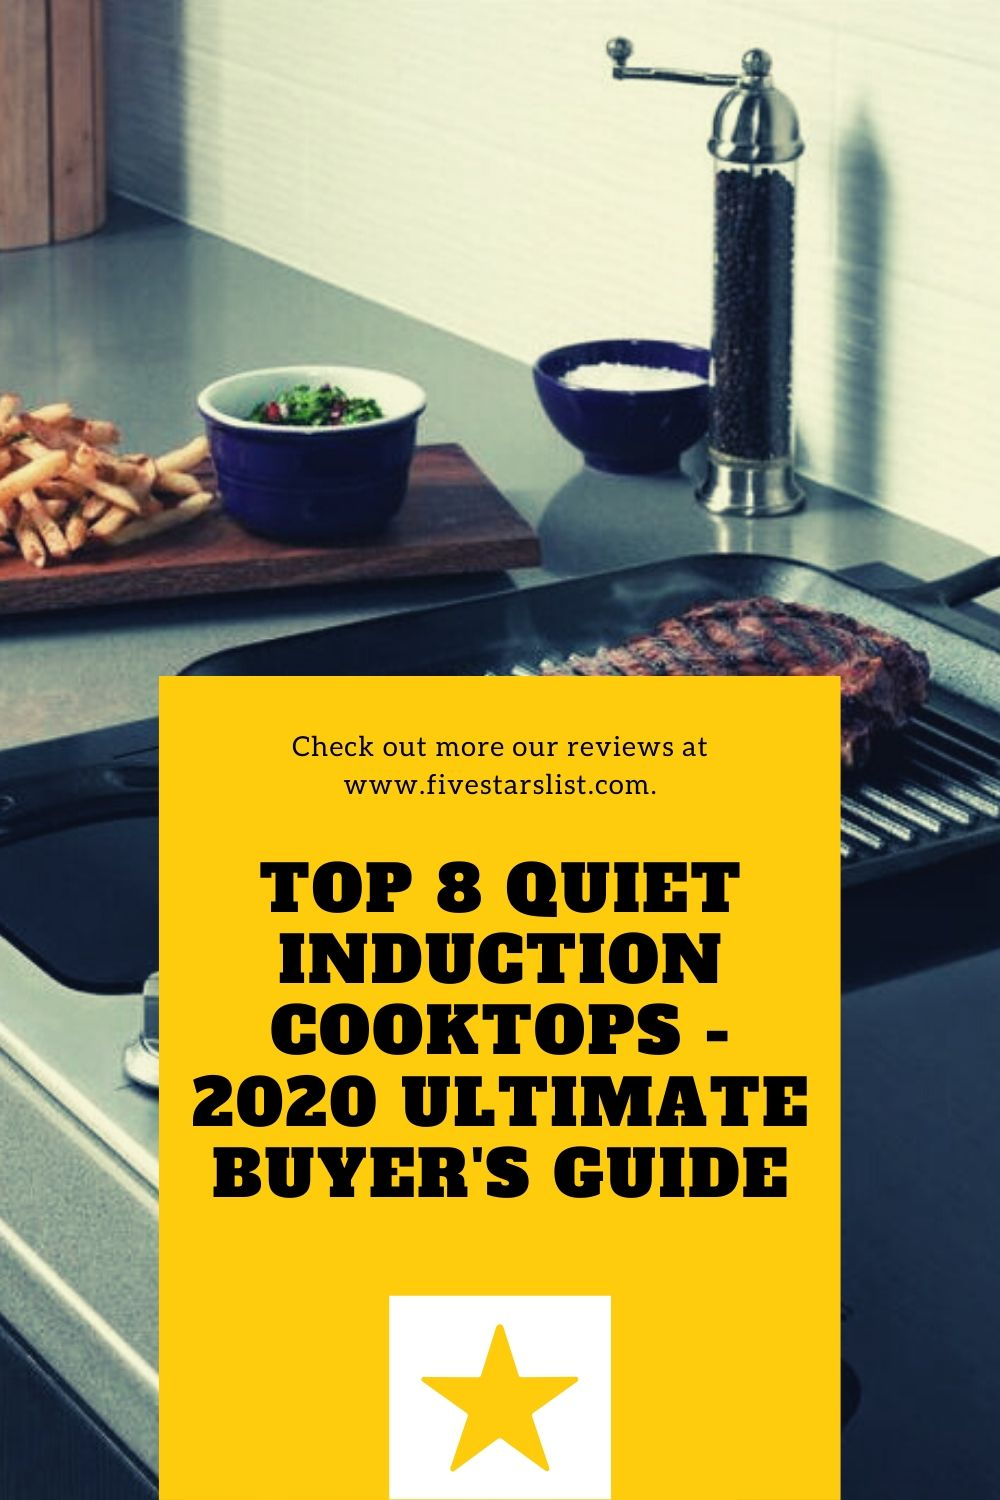 Top 8 Quiet Induction Cooktops - Ultimate Buyer's Guide